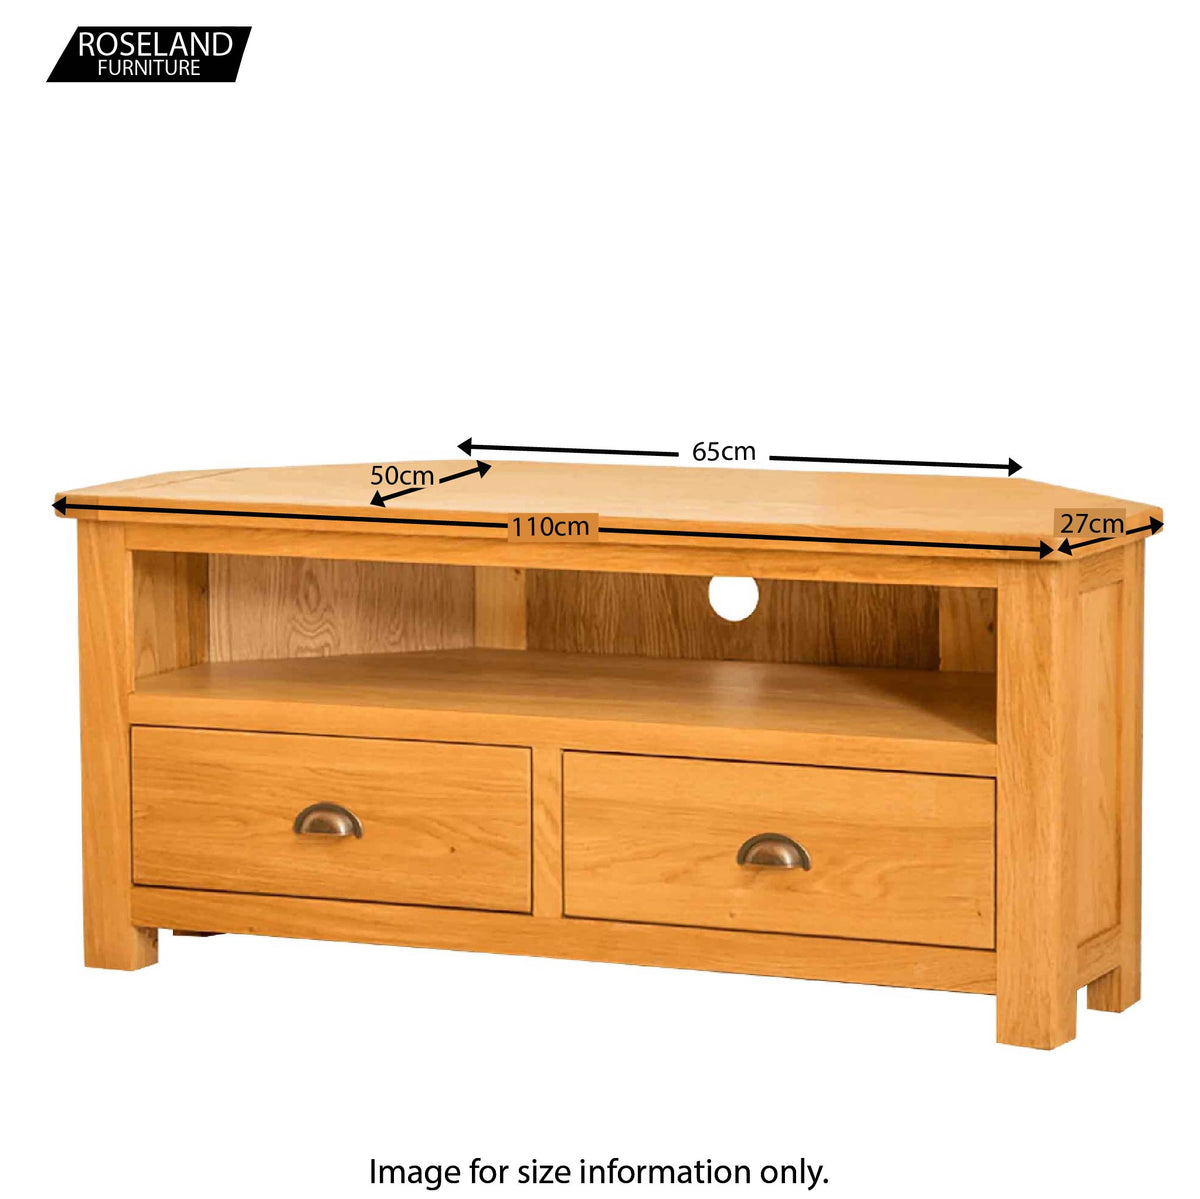 Roseland Oak Corner TV Stand - Additional Size Guide